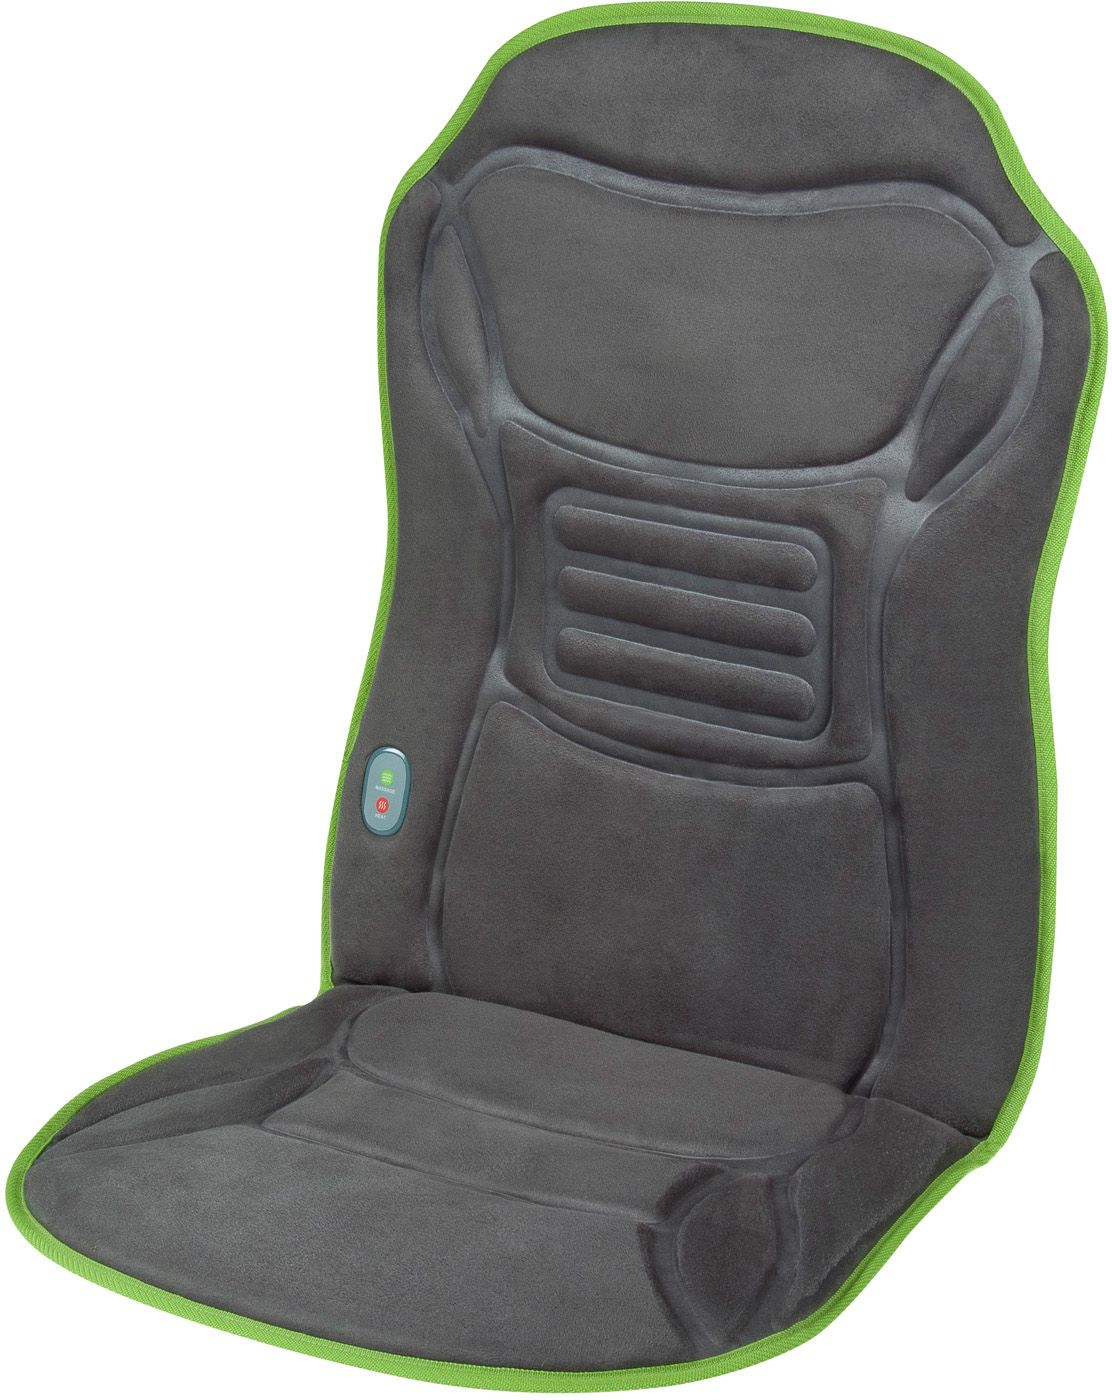 ECOMED Ecomed, Vibrations-Massagesitzauflage, MC-85E